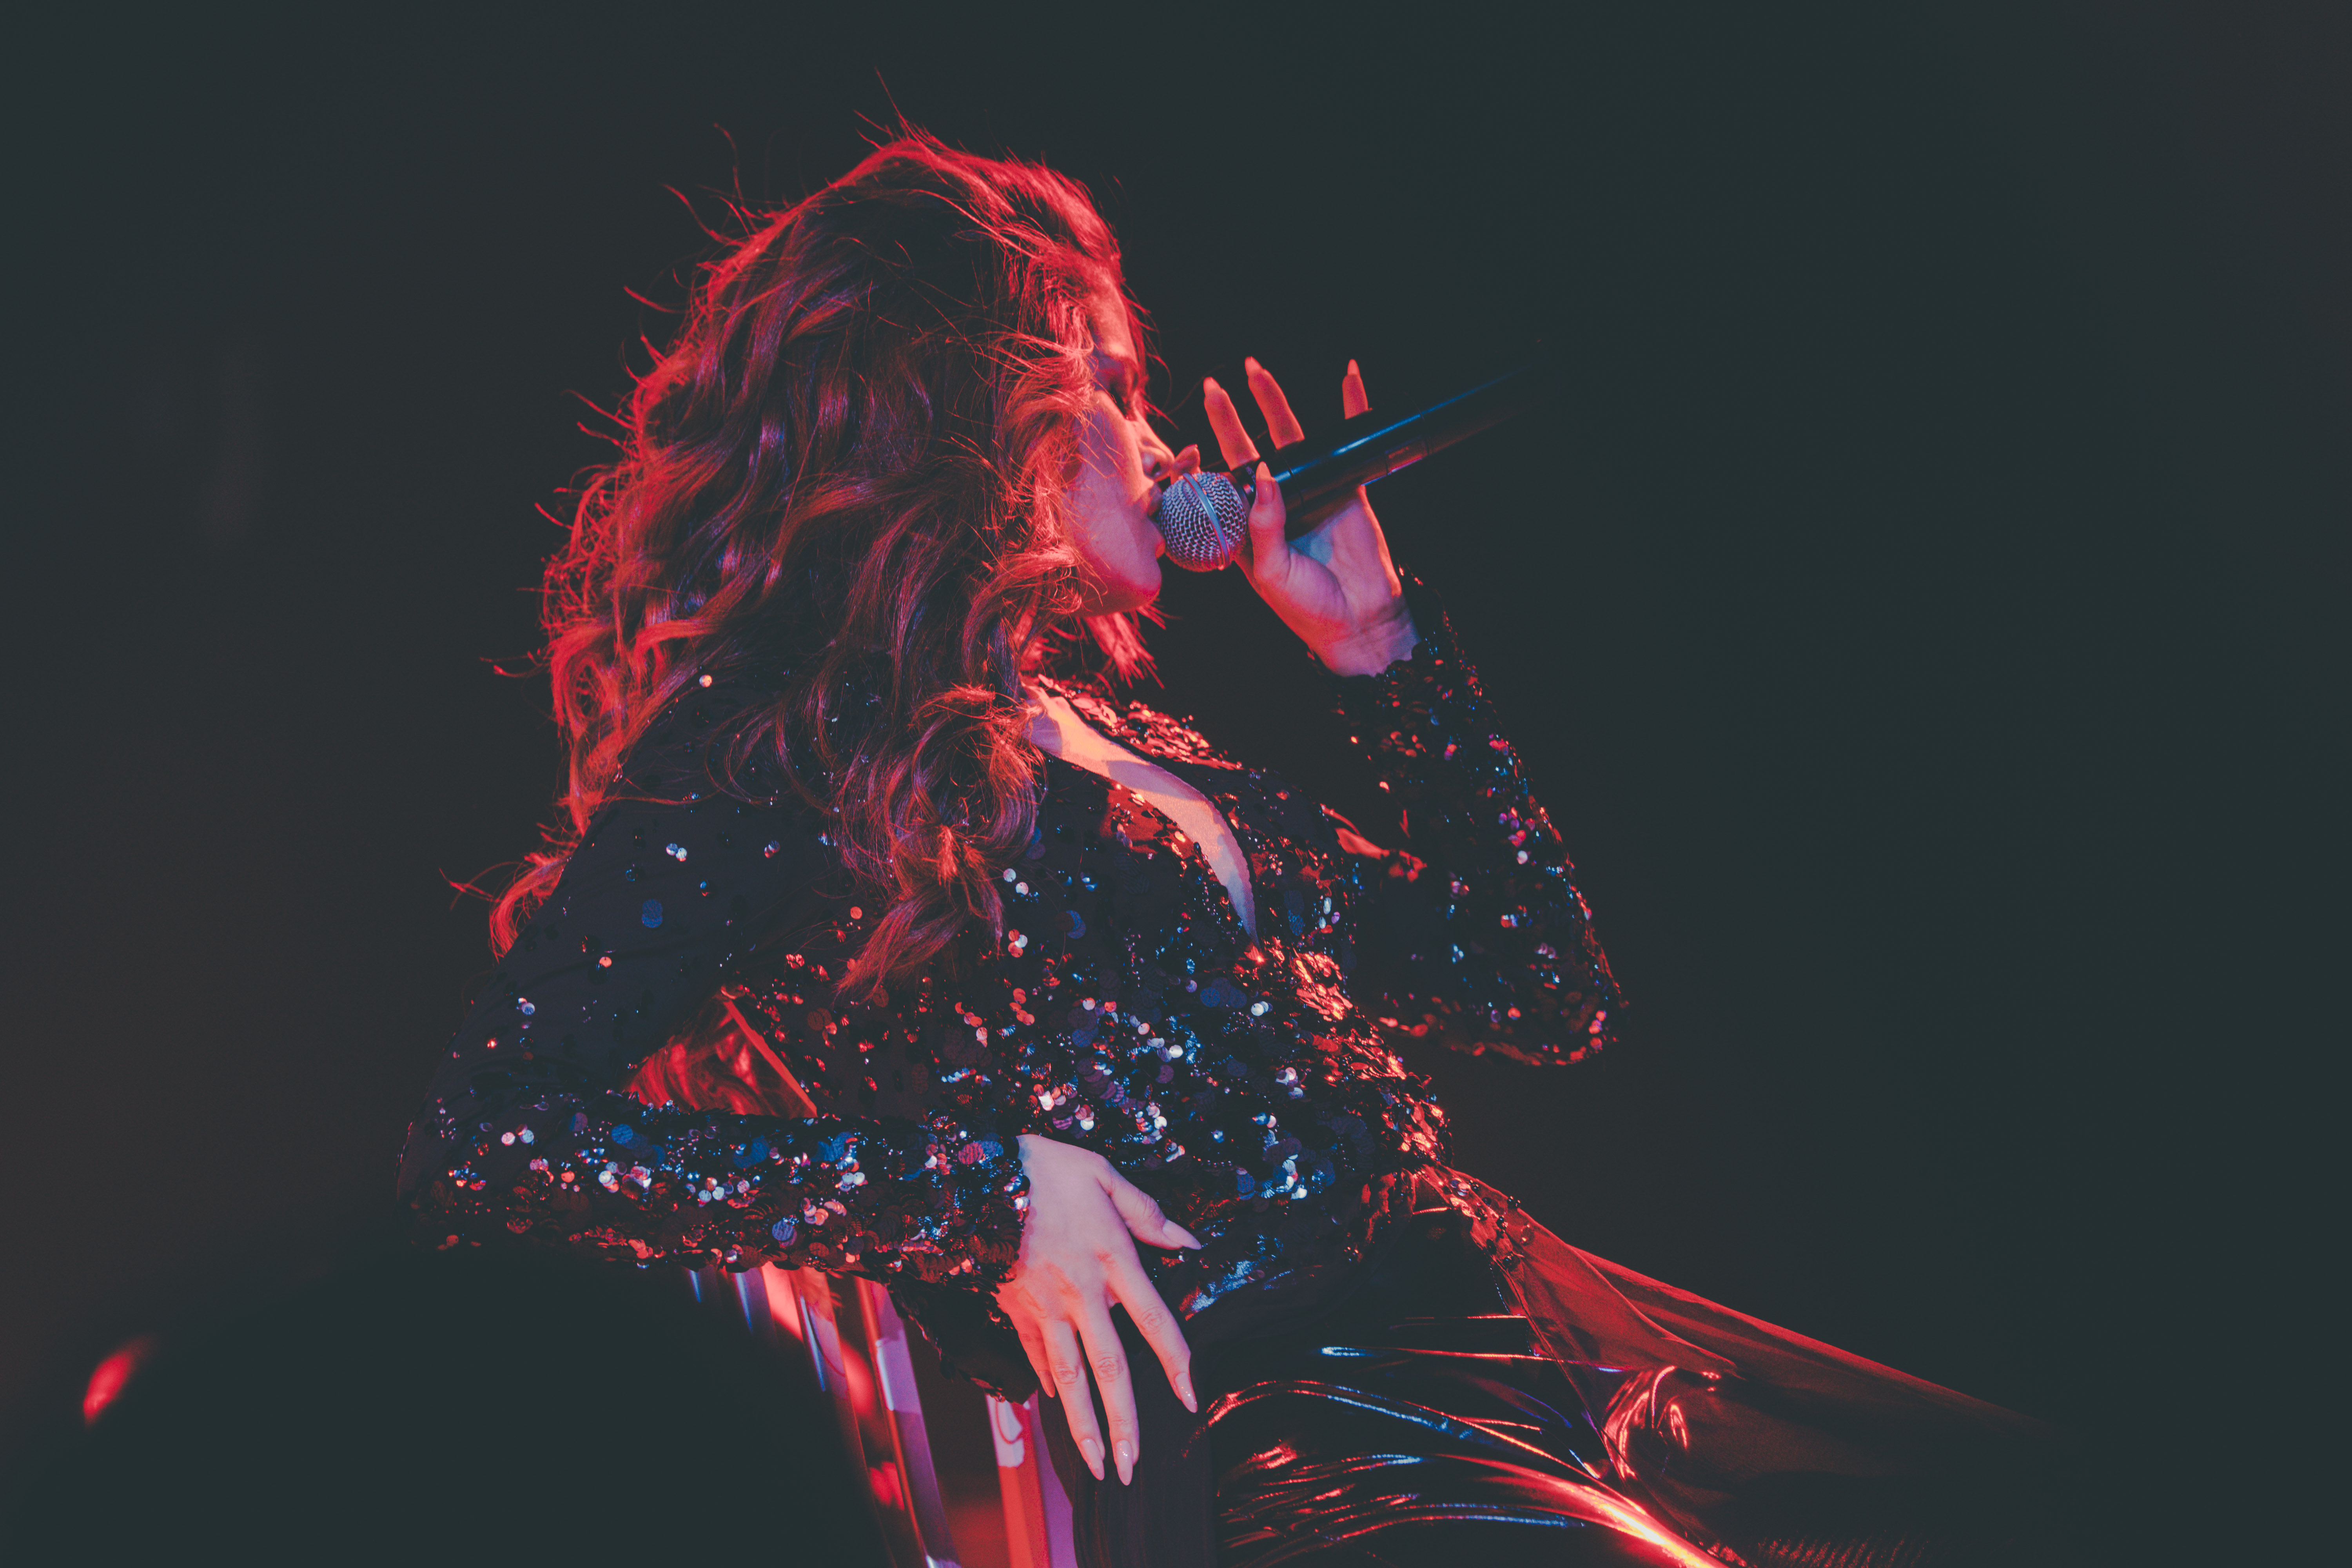 Selena Gomez performing during her Revival Tour in red lighting by Izak Rappaport